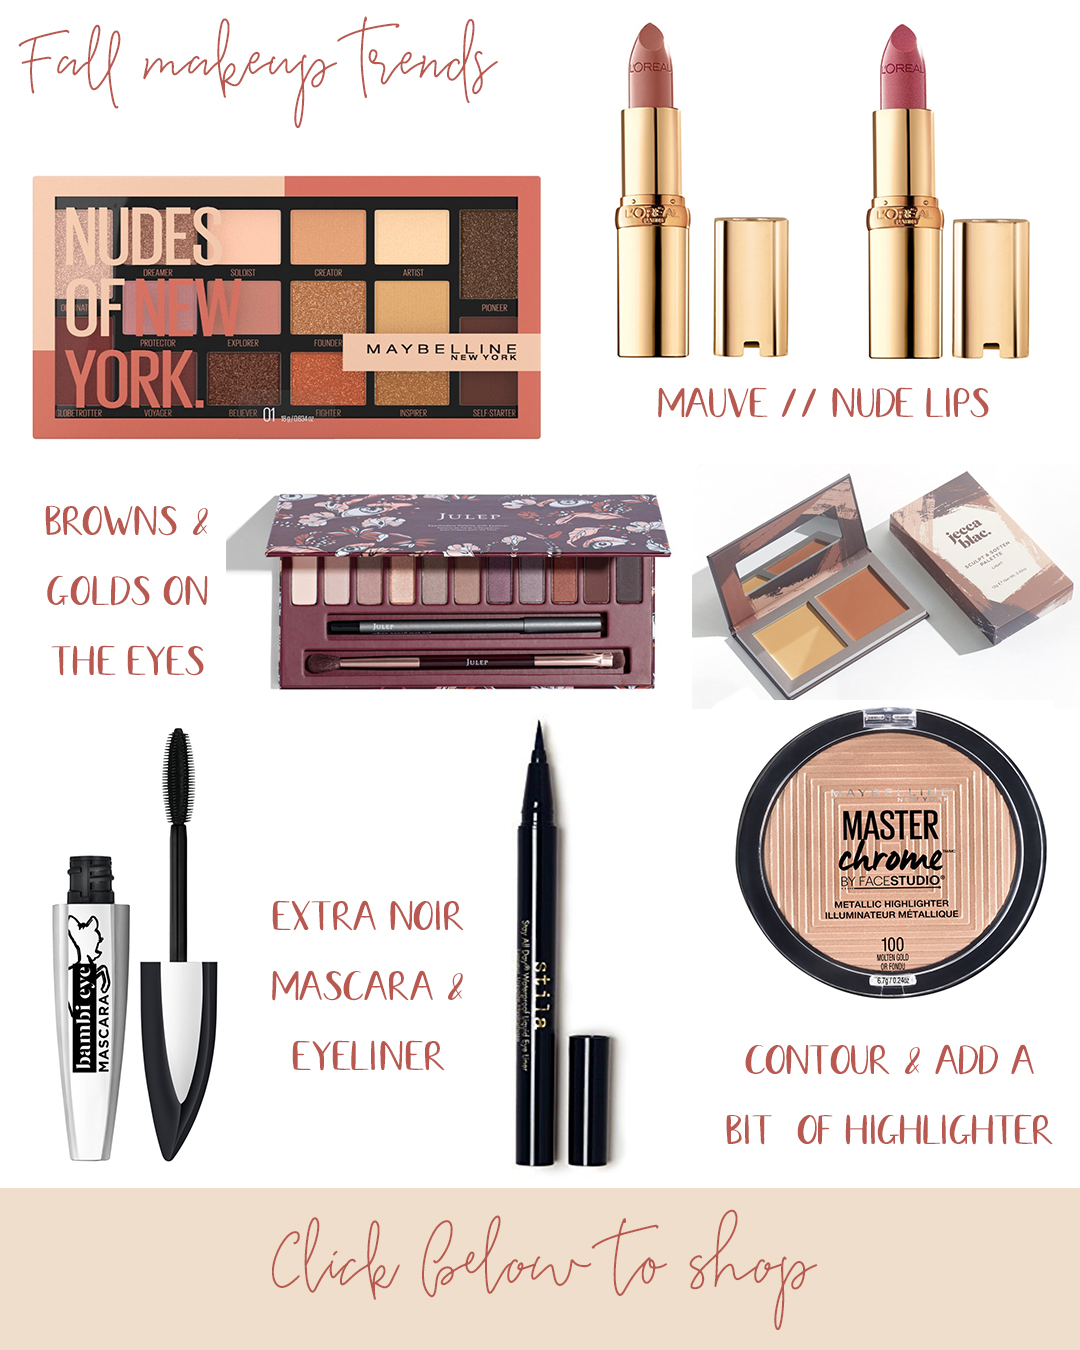 Fall Beauty: Makeup & Nail Trends for 2020! Chatting all about what is hot this season for eyeshadows, lip colors, nails and so much more.